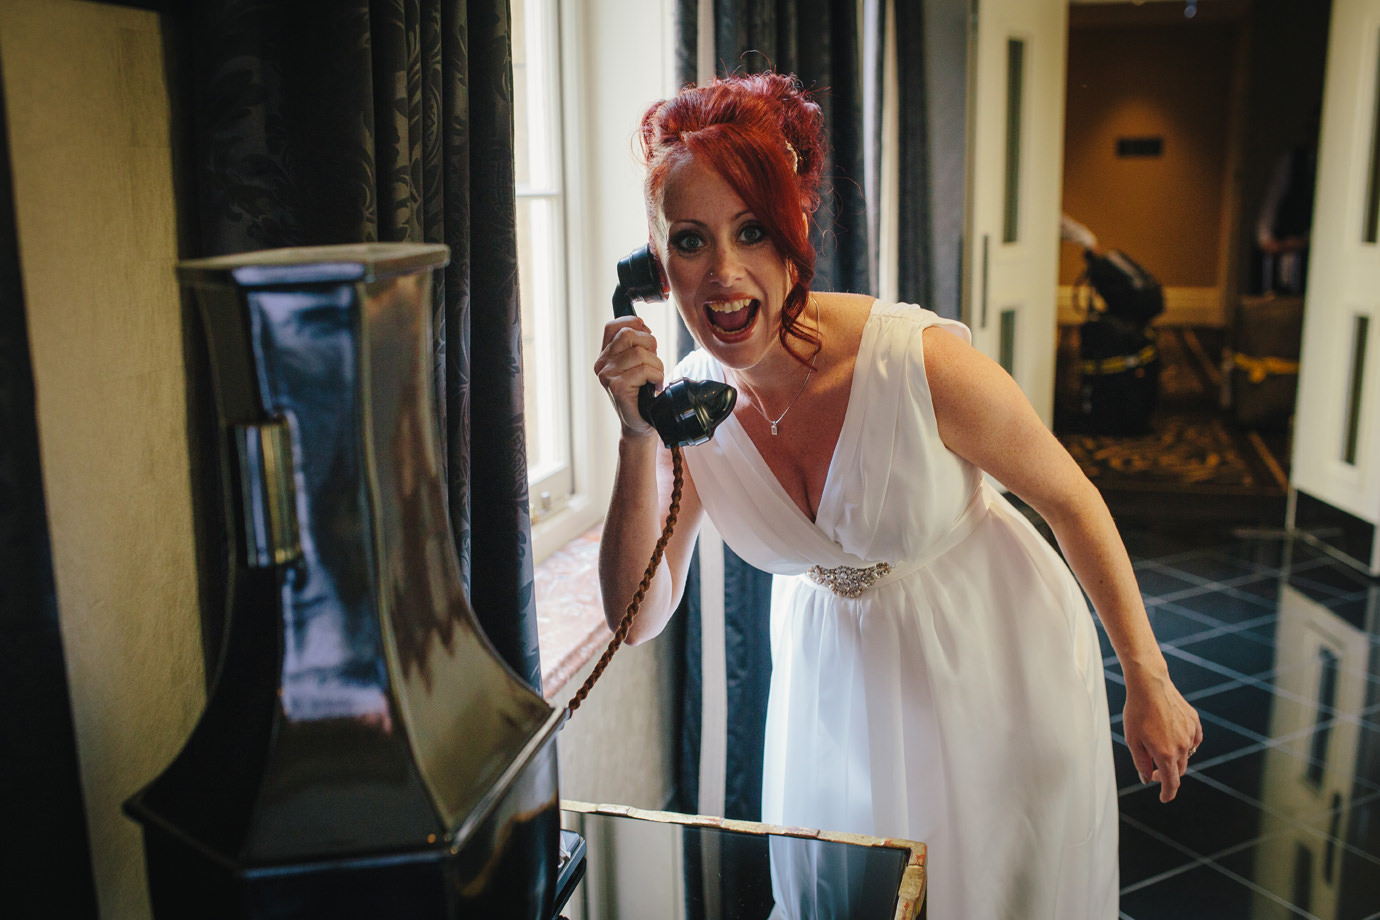 Discovering the phone during a wander around the Savoy hotel